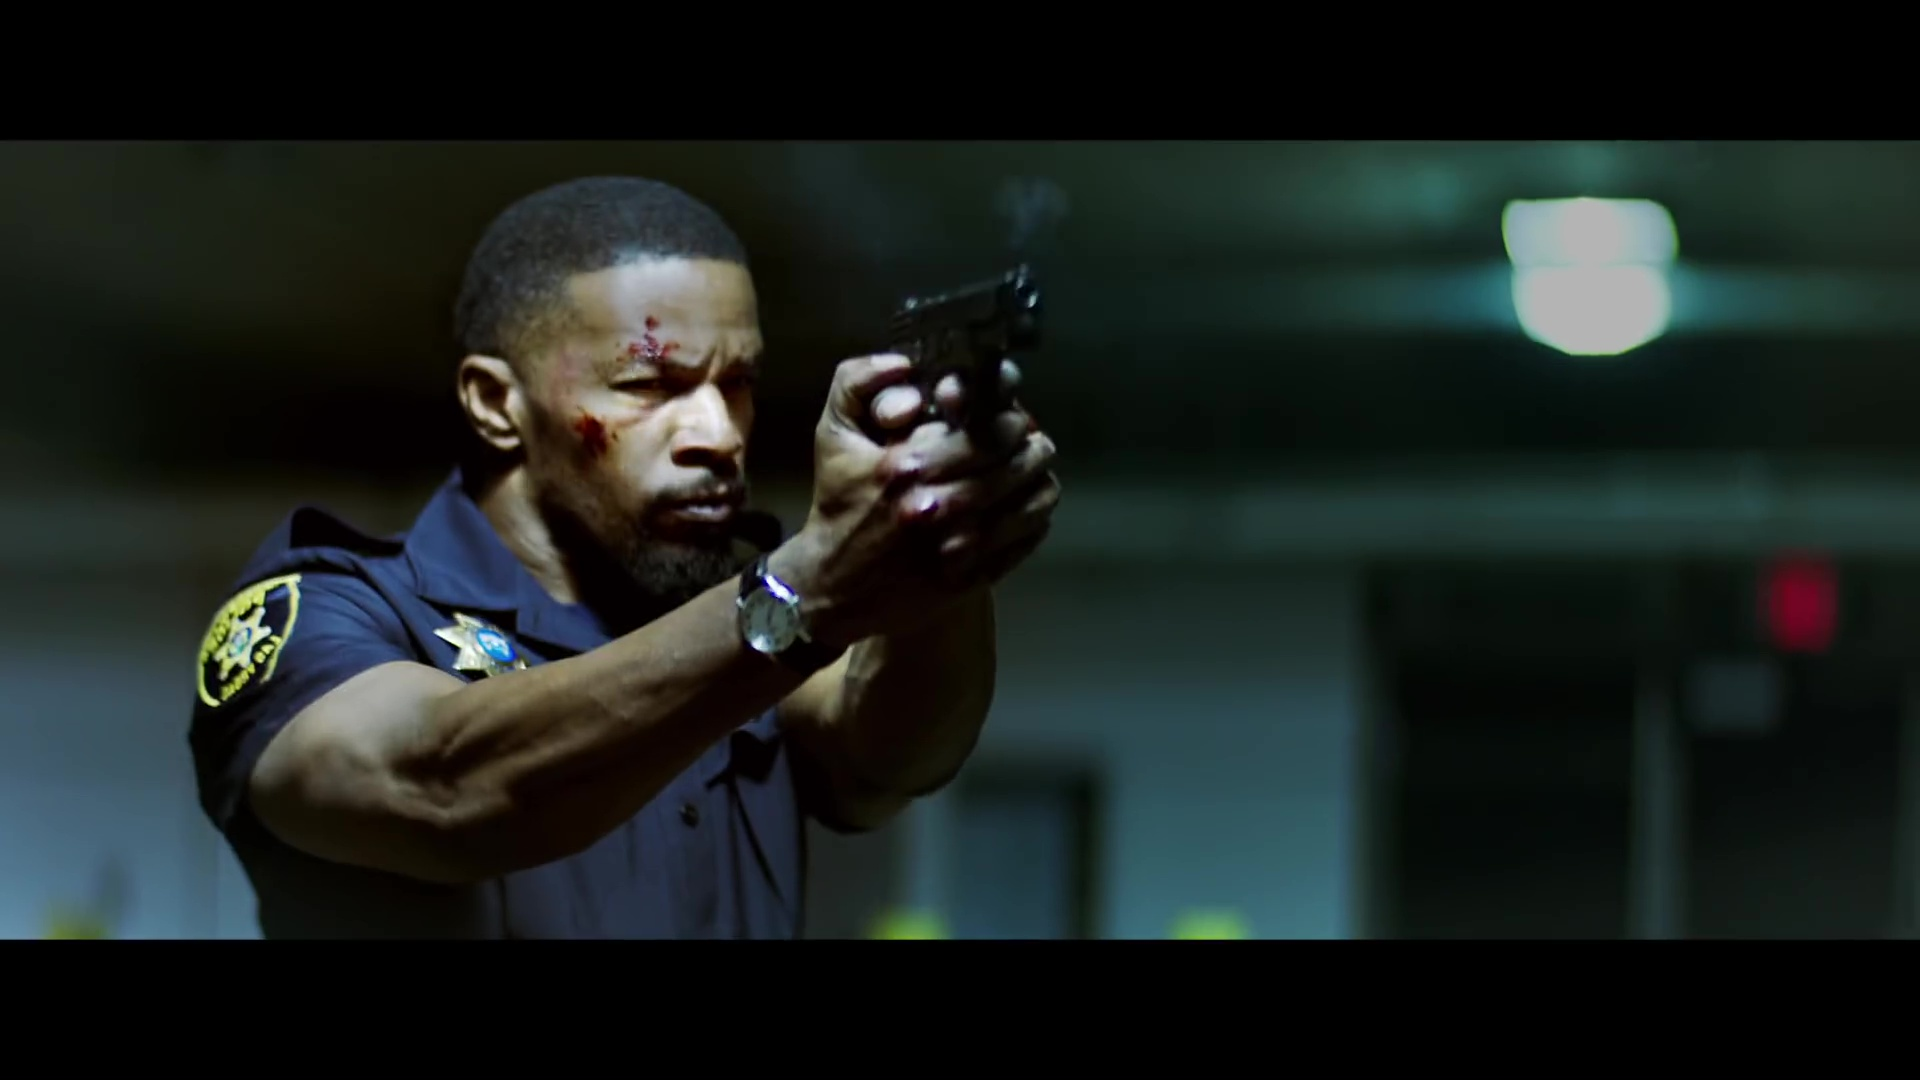 Jamie foxx new movie release